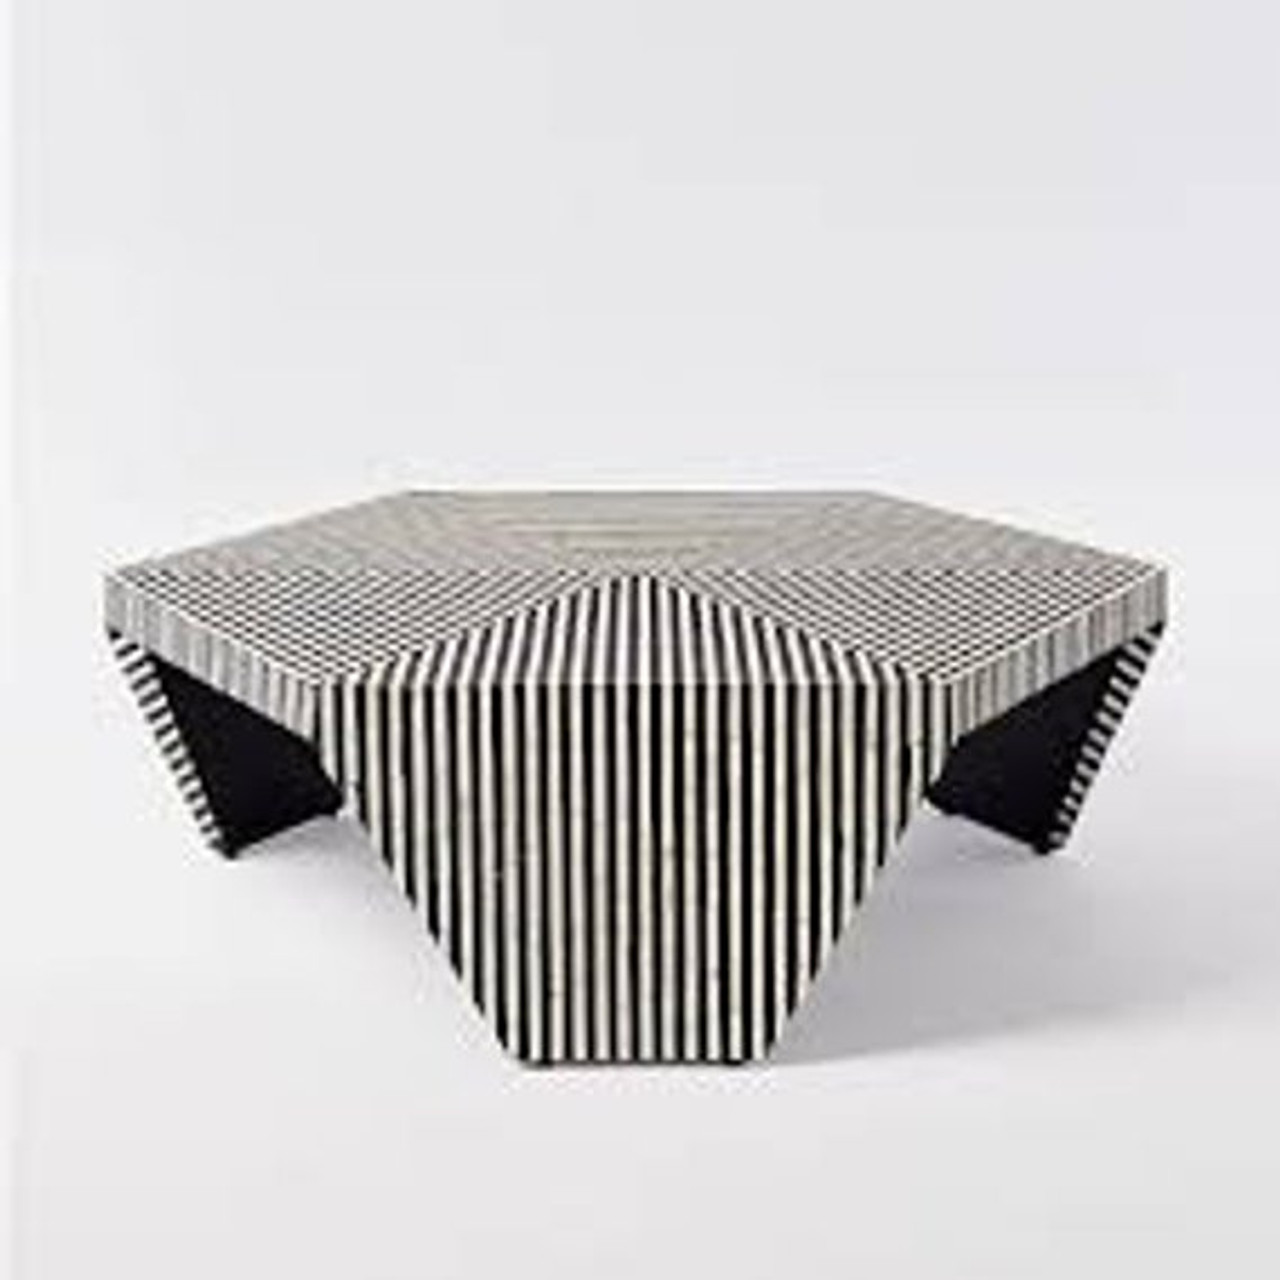 - Optical Strip Pattern Hexagonal Bone Inlay Coffee Table Or Centre